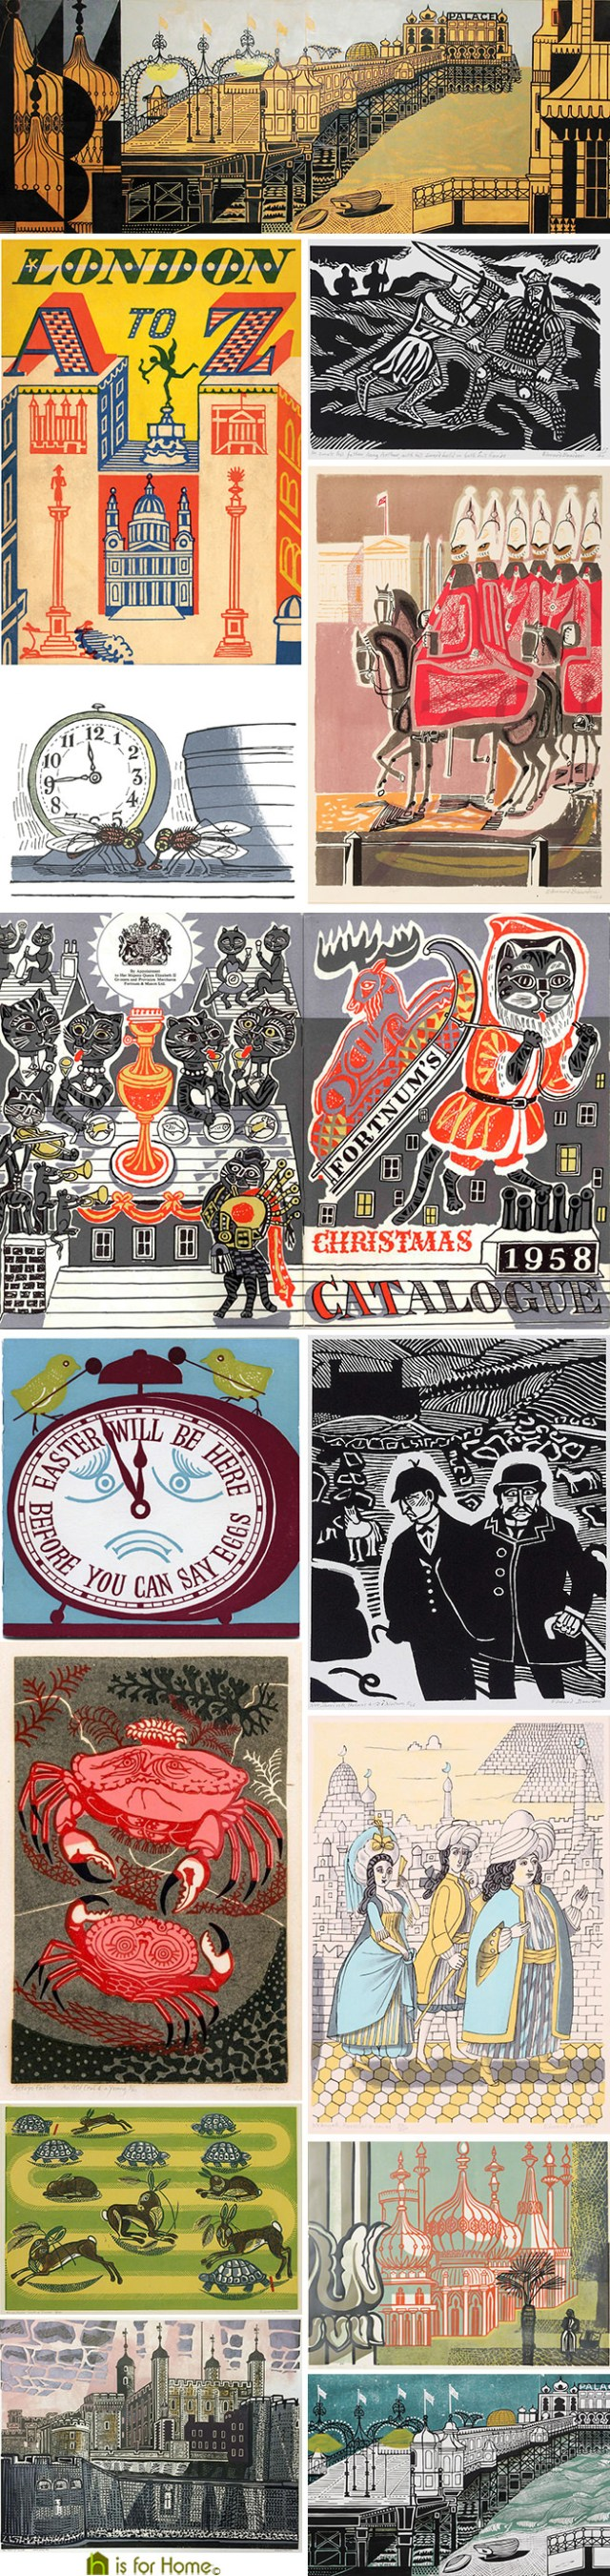 Mosaic of Edward Bawden artworks | H is for Home